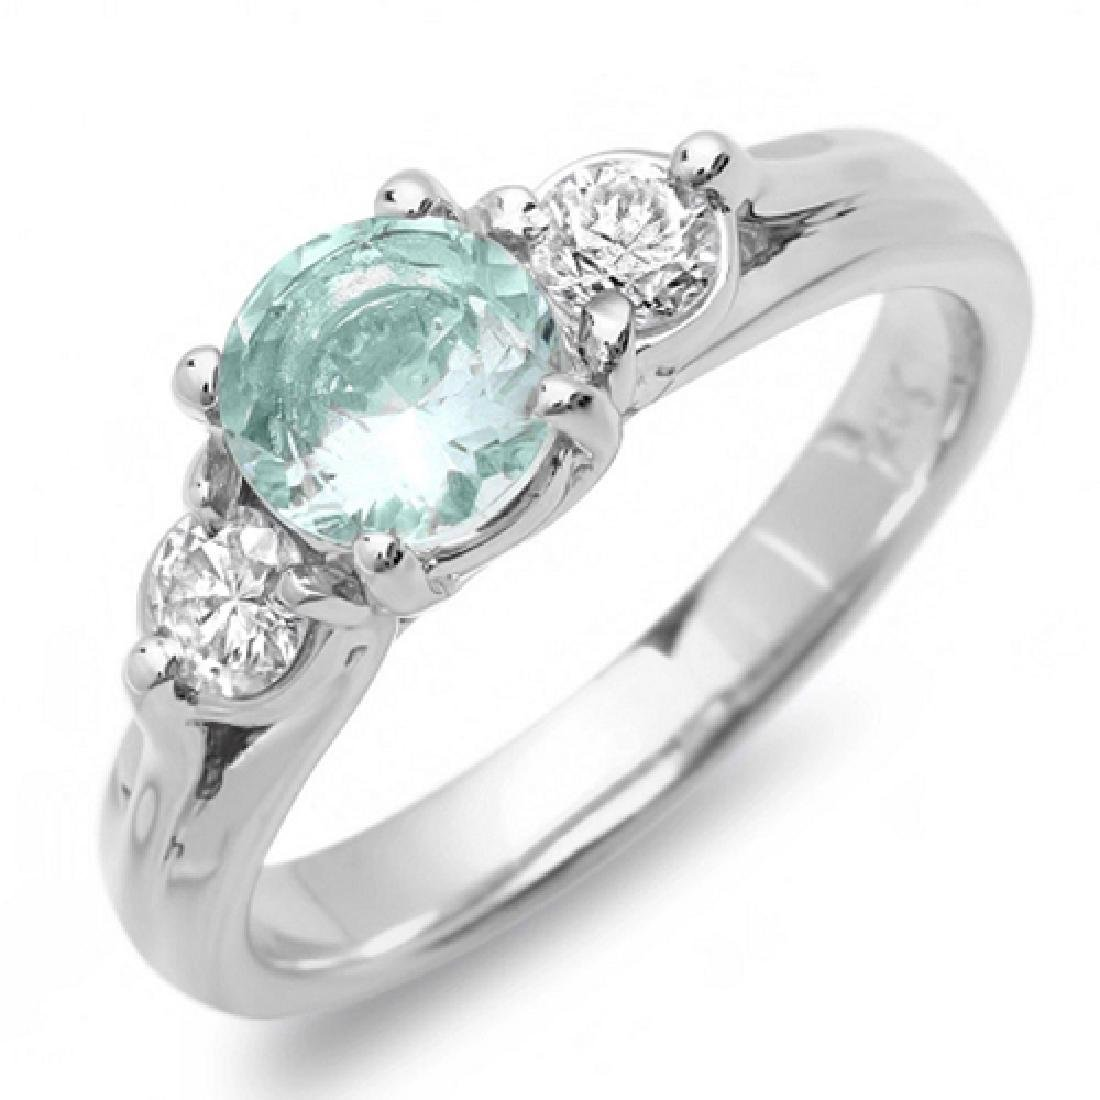 1.30 Carat Natural Aquamarine 18K Solid White Gold